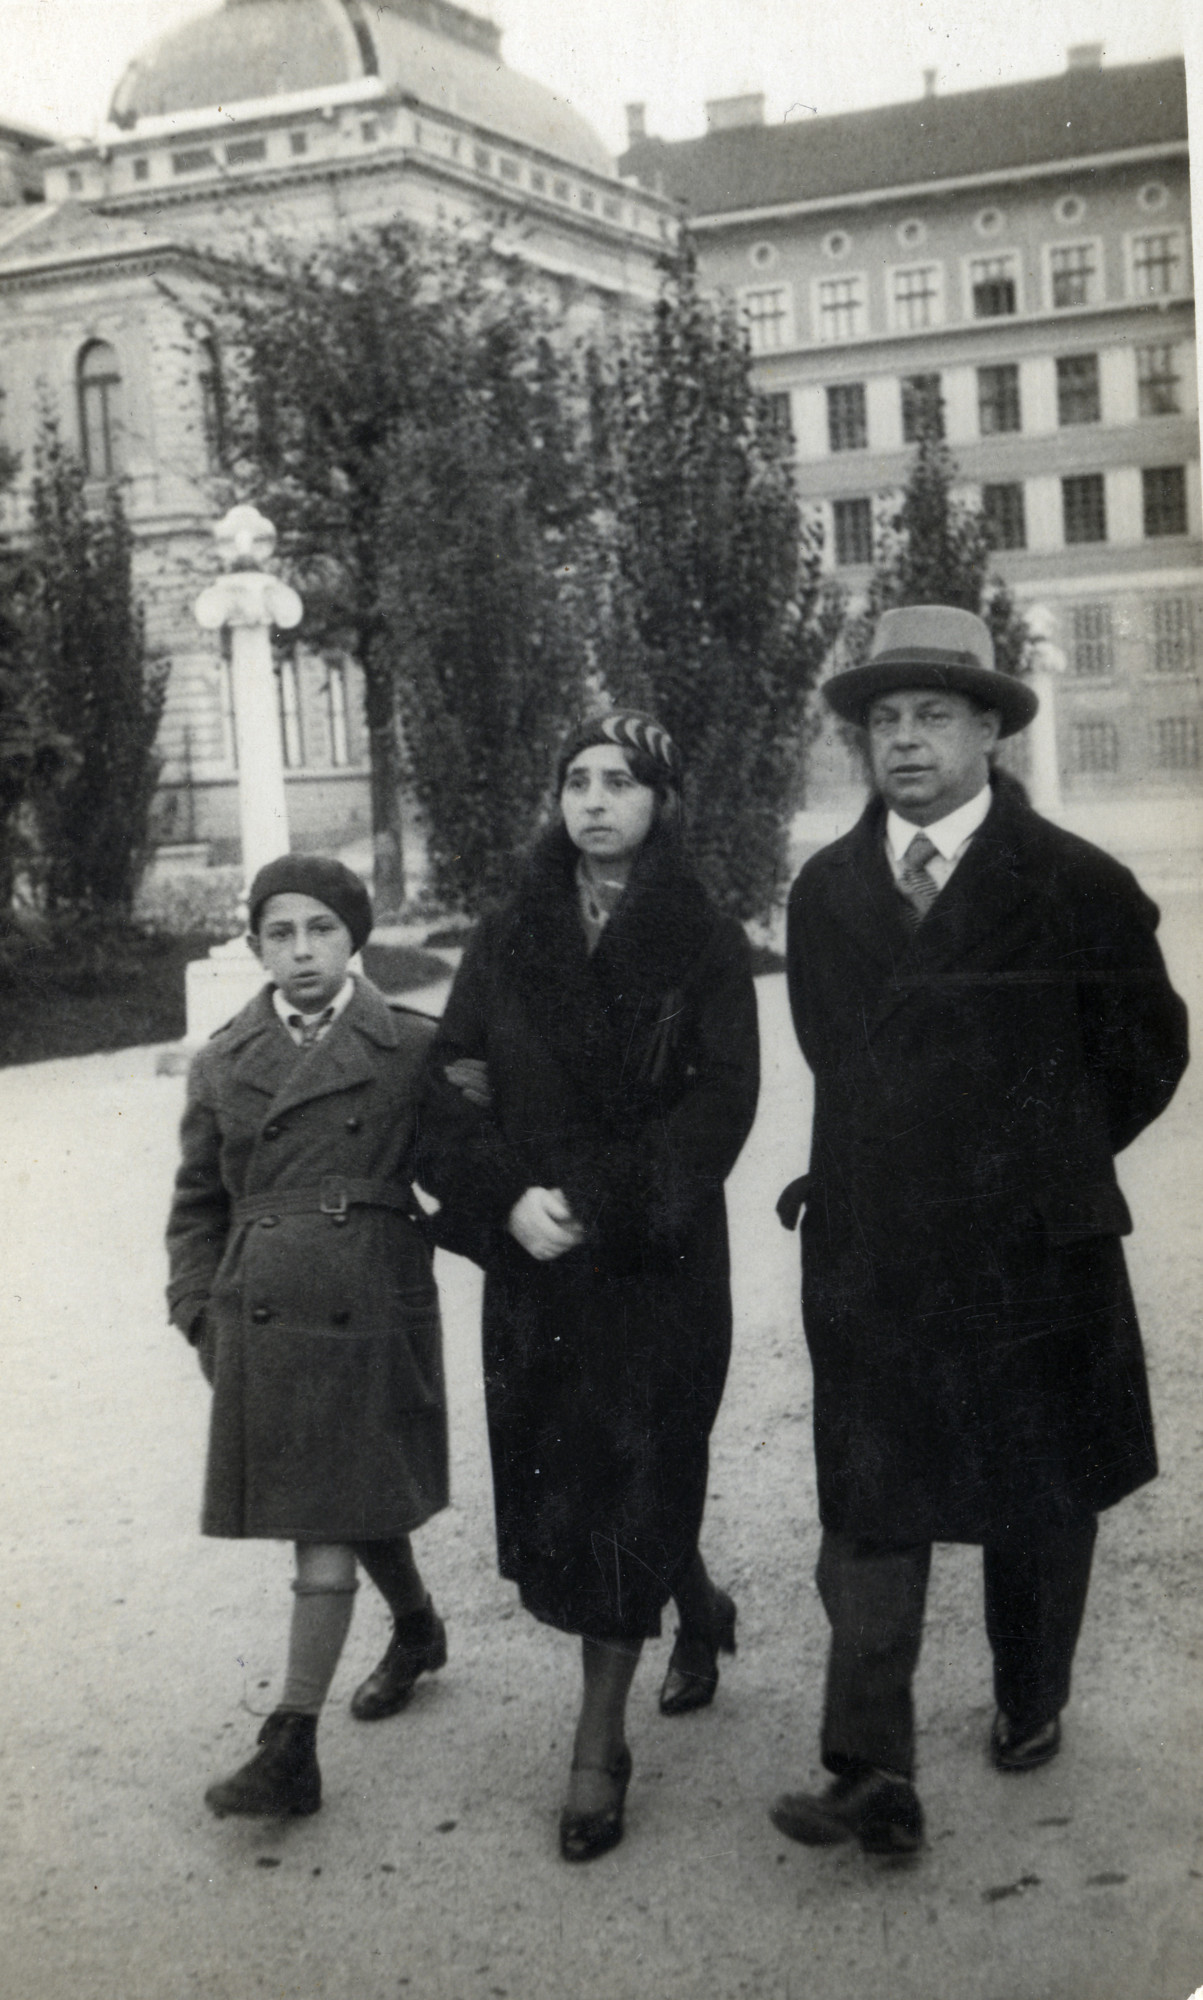 A Hungarian Jewish family walks down the street in Szeged.  Pictured are Aladar Honig and Irene (nee Banyai) Honig, with their son Stefan.